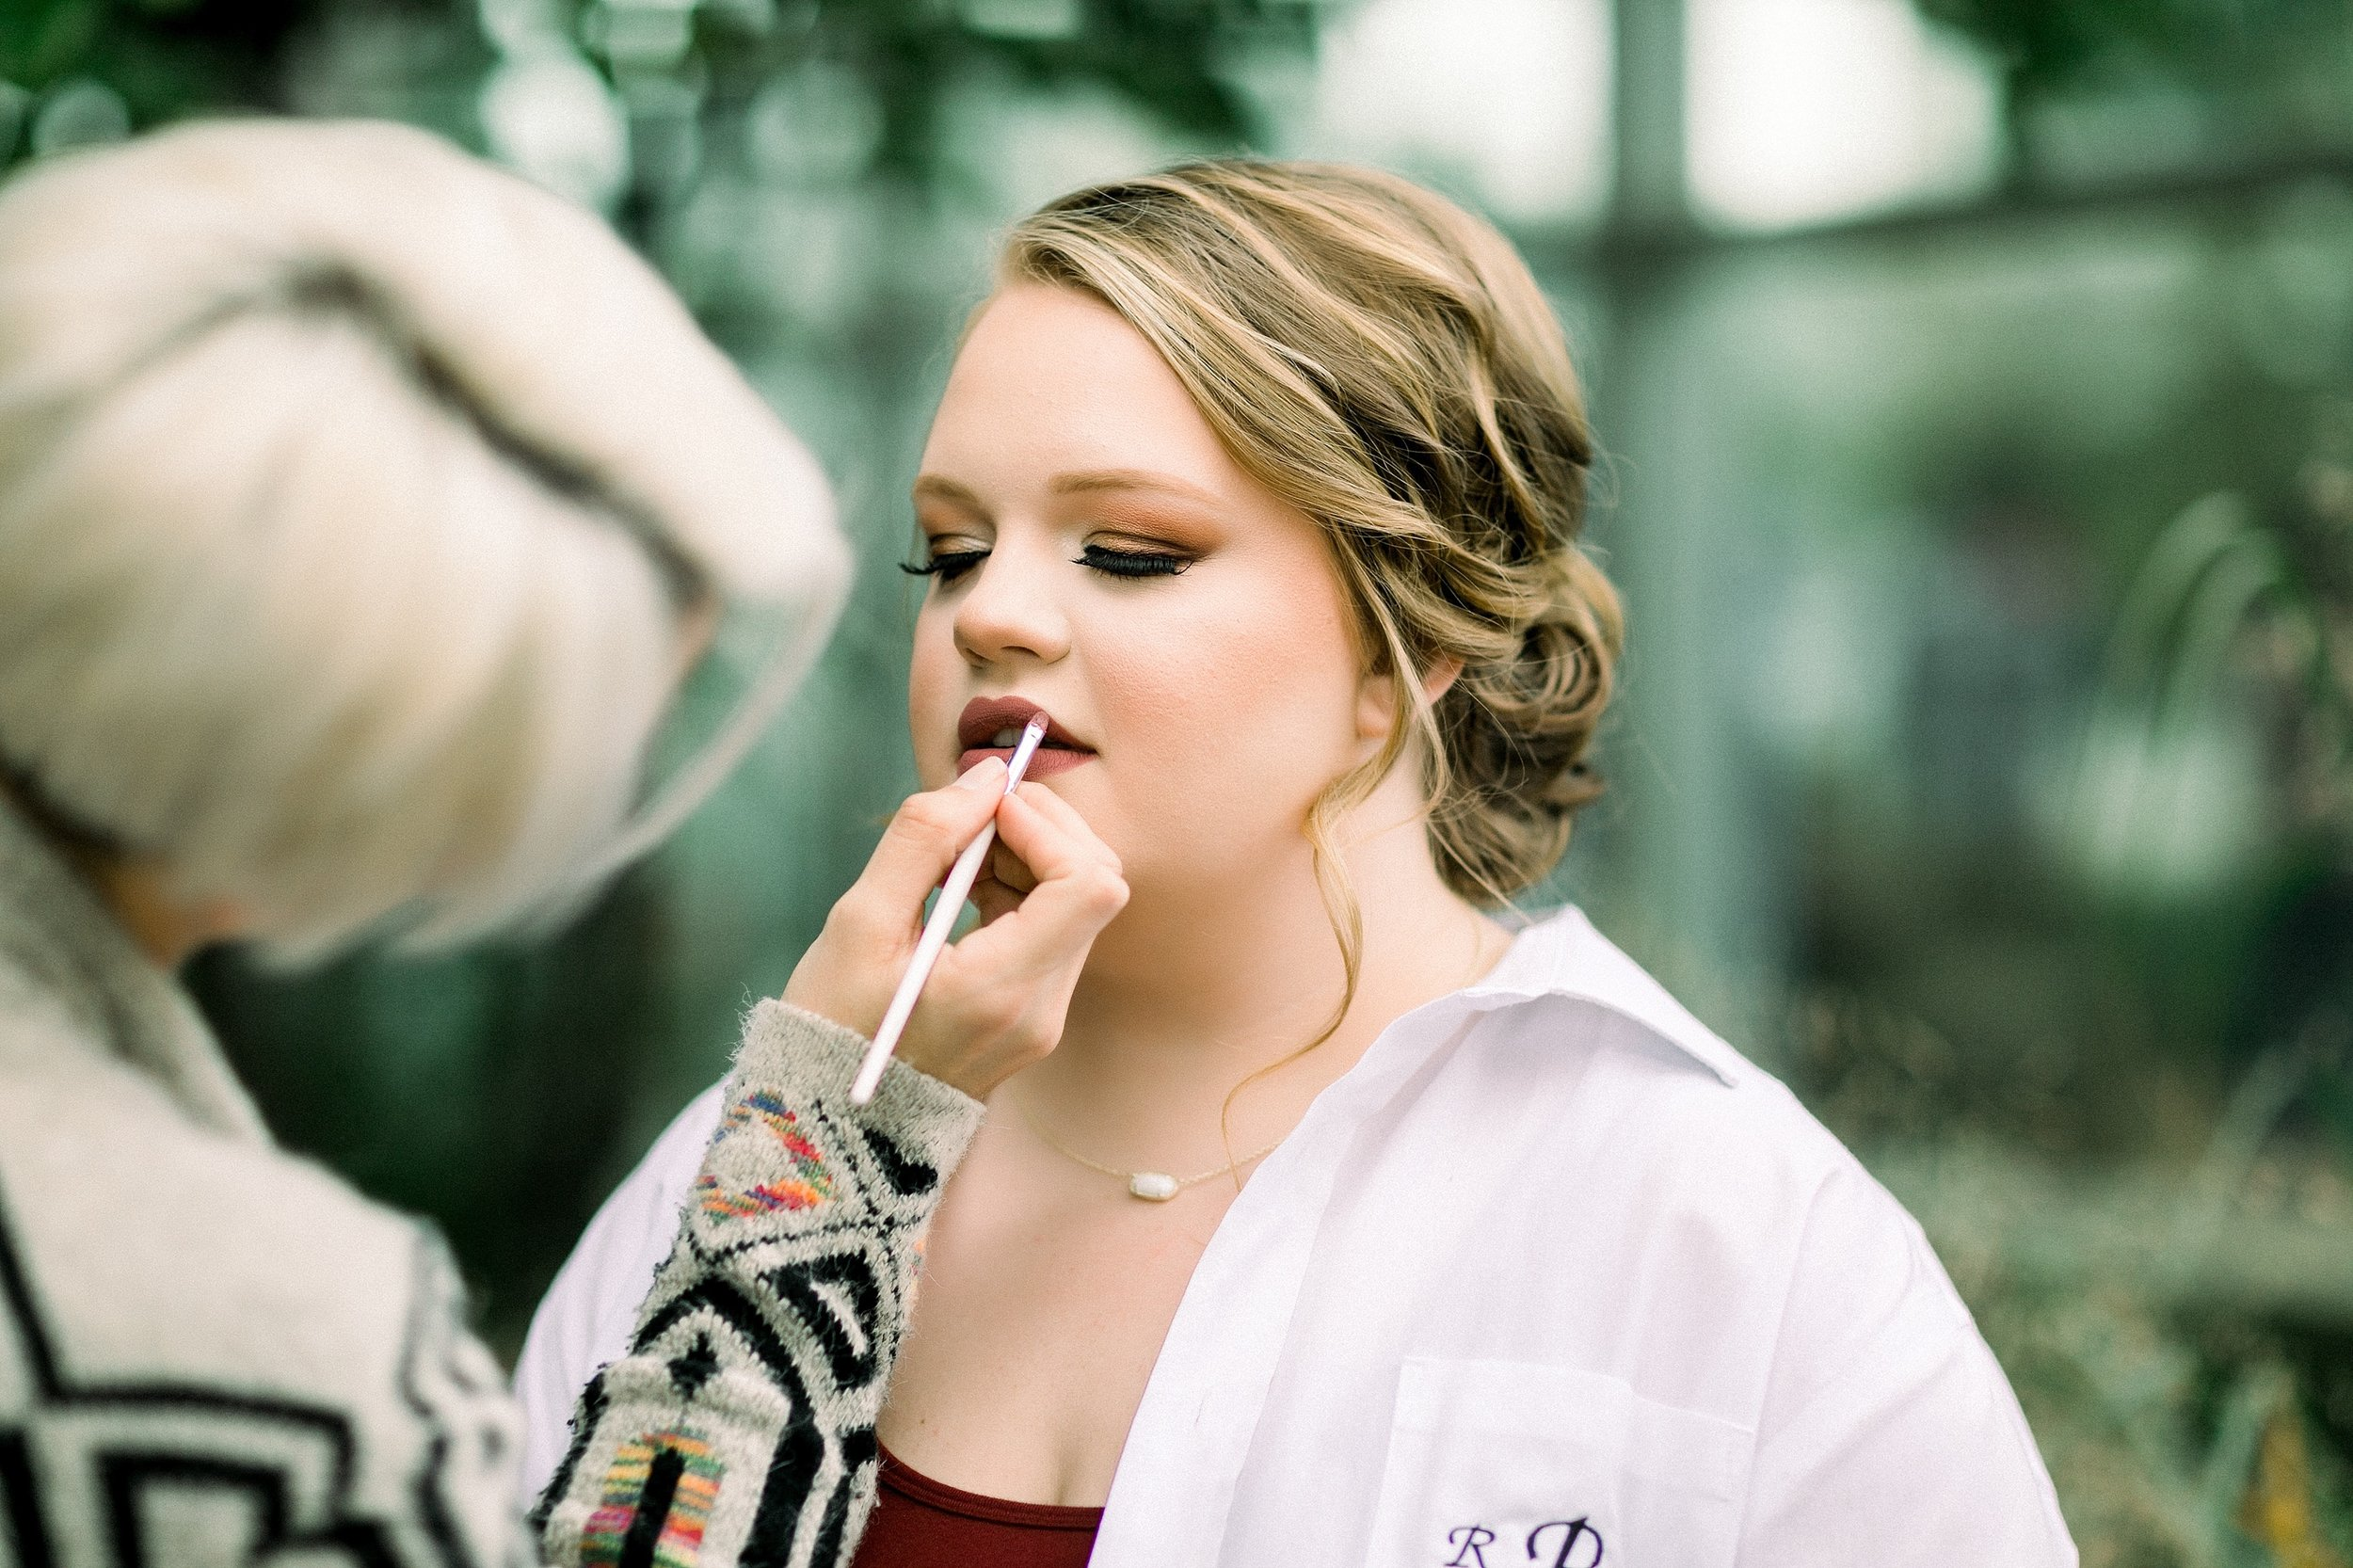 Ryanne-and-william-wedding-at-river-bend-nature-center-wichita-falls-texas-two-clever-chicks-0015.jpg